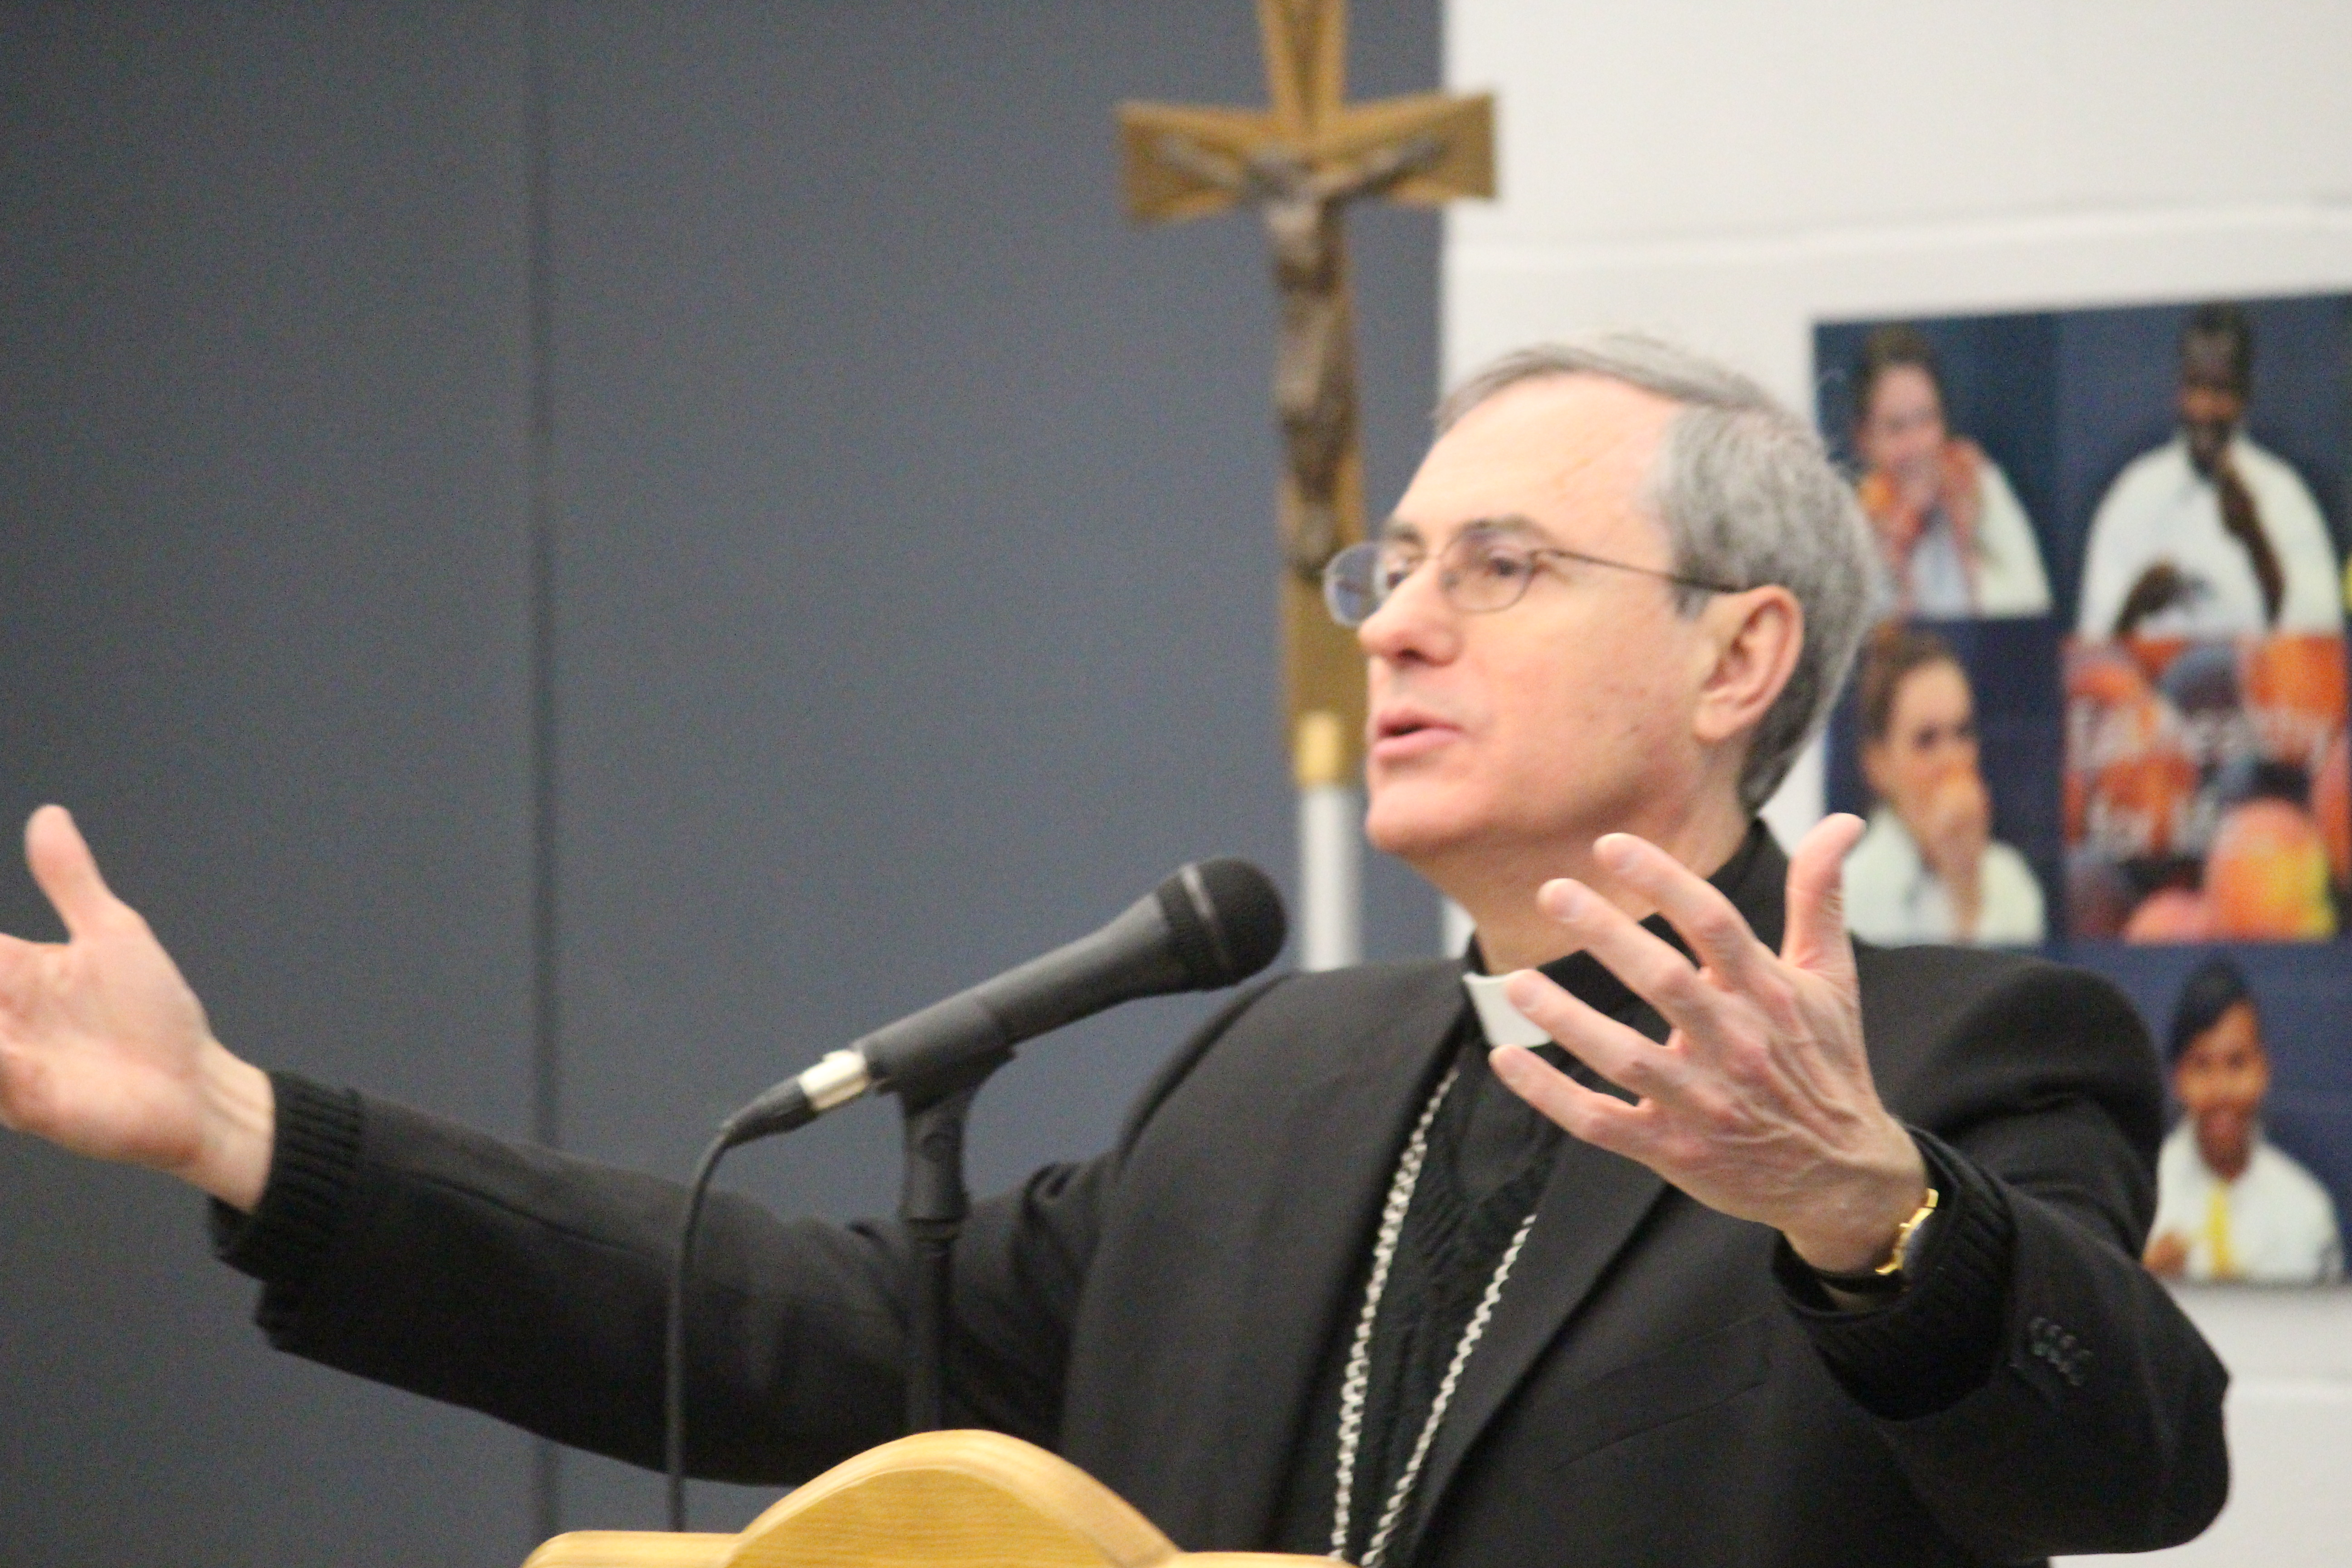 Diocese of London Bishop Ronald Fabbro. (Photo by Adelle Loiselle)